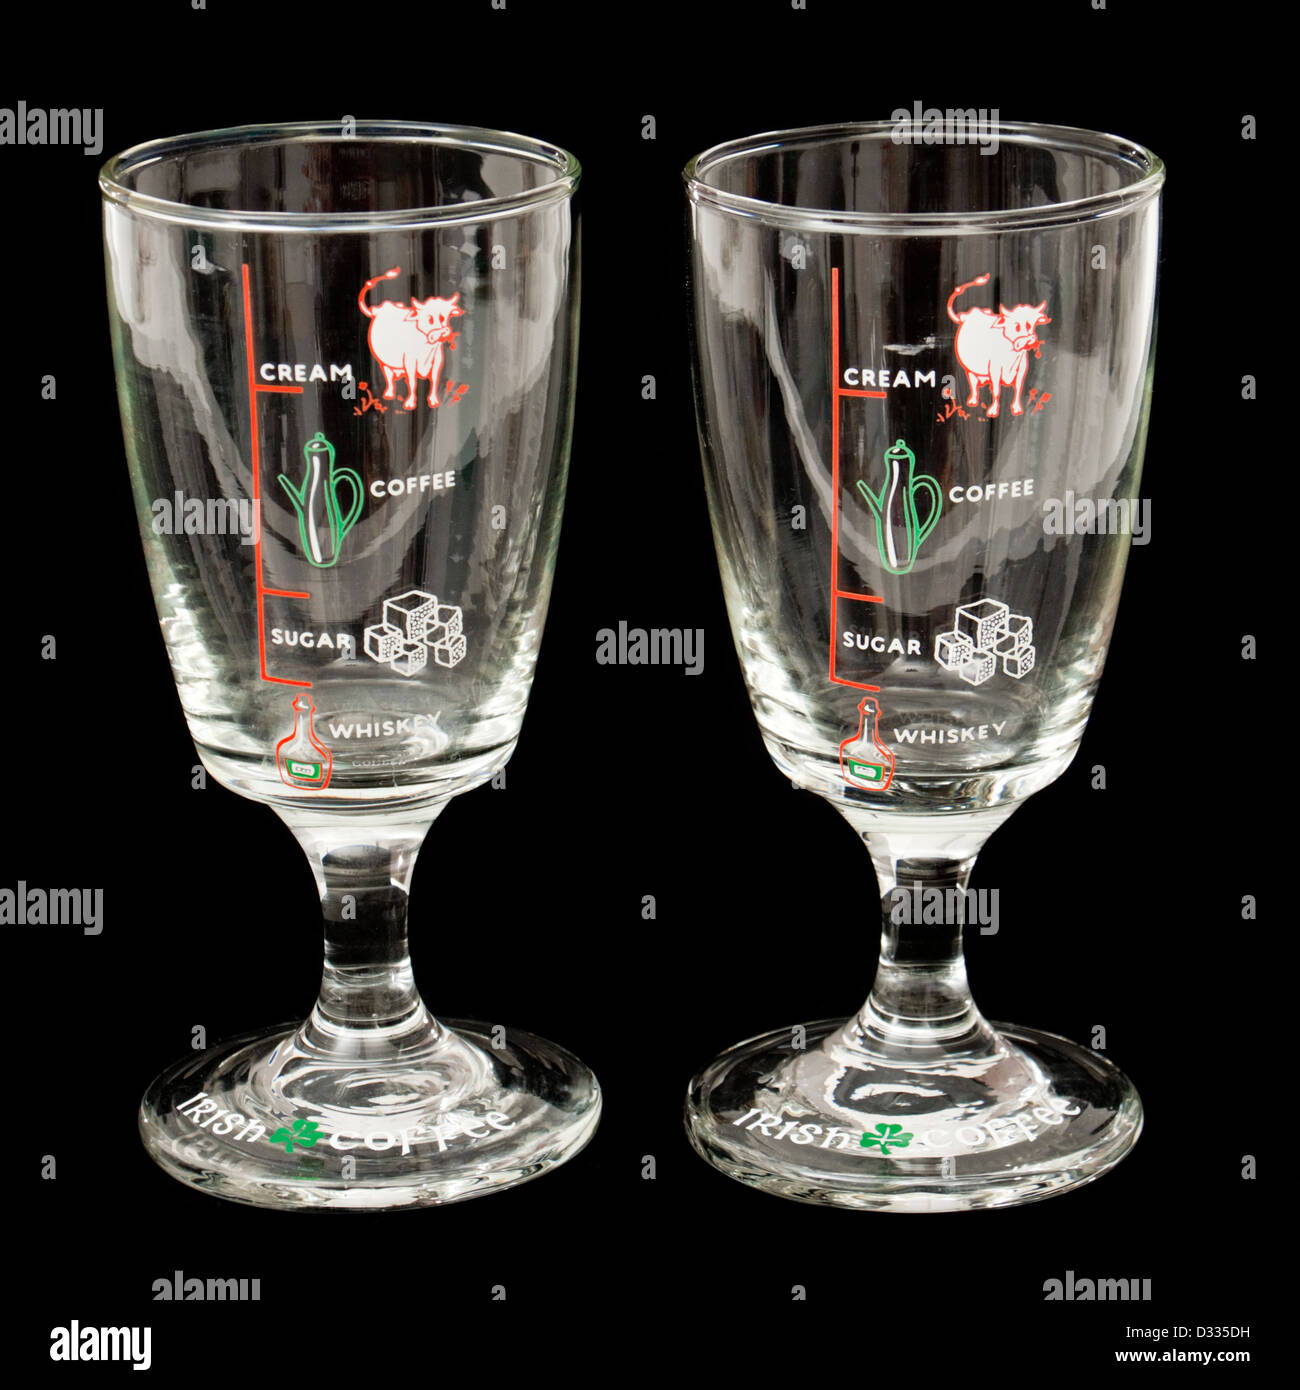 Pair Of Irish Coffee Glasses With Markings For Whiskey